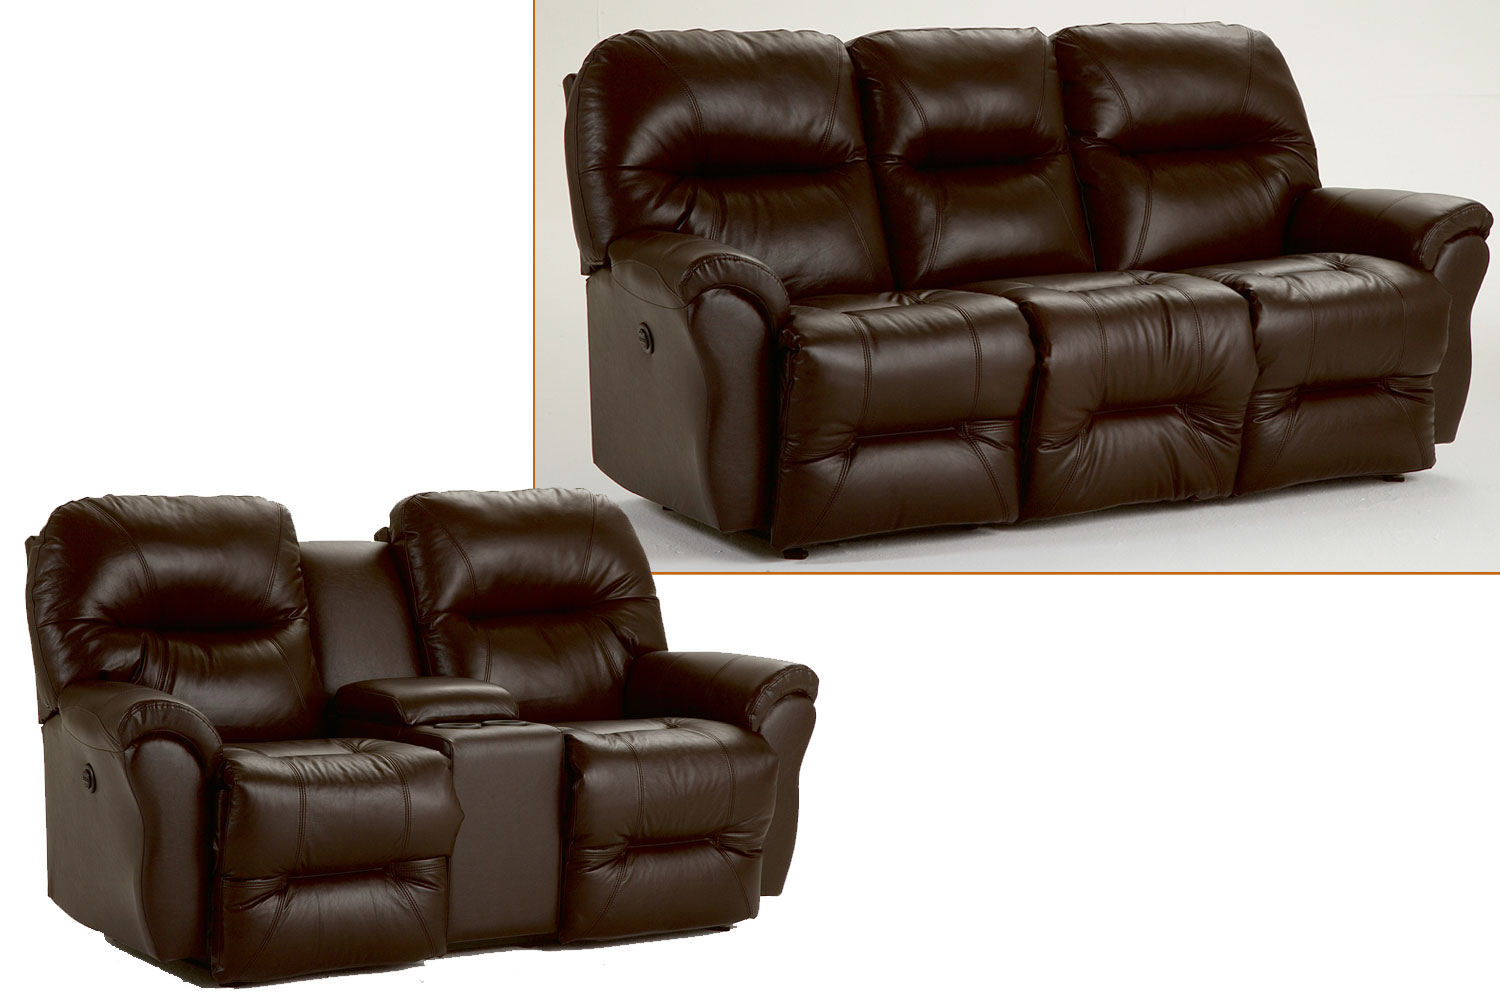 Reclining jasen 39 s fine furniture since 1951 Leather reclining loveseat